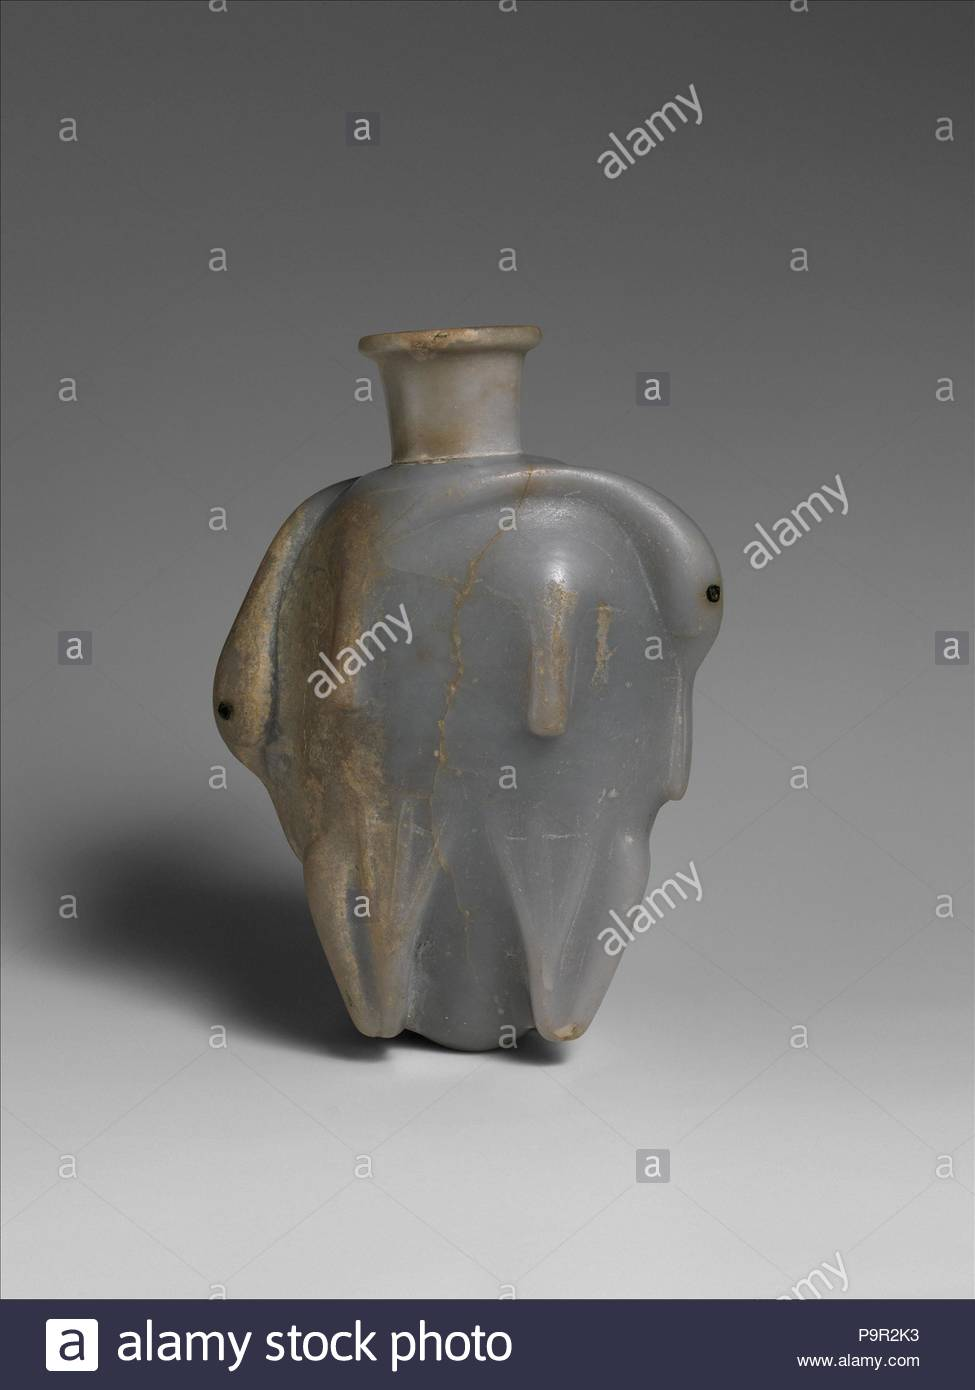 Vase, Middle Kingdom, Dynasty 13–17, ca. 1800–1550 B.C., From Egypt, Northern Upper Egypt, Abydos, Garstang excavations, 1907, Anhydrite, h. 12.5 cm (4 15/16 in). Stock Photo